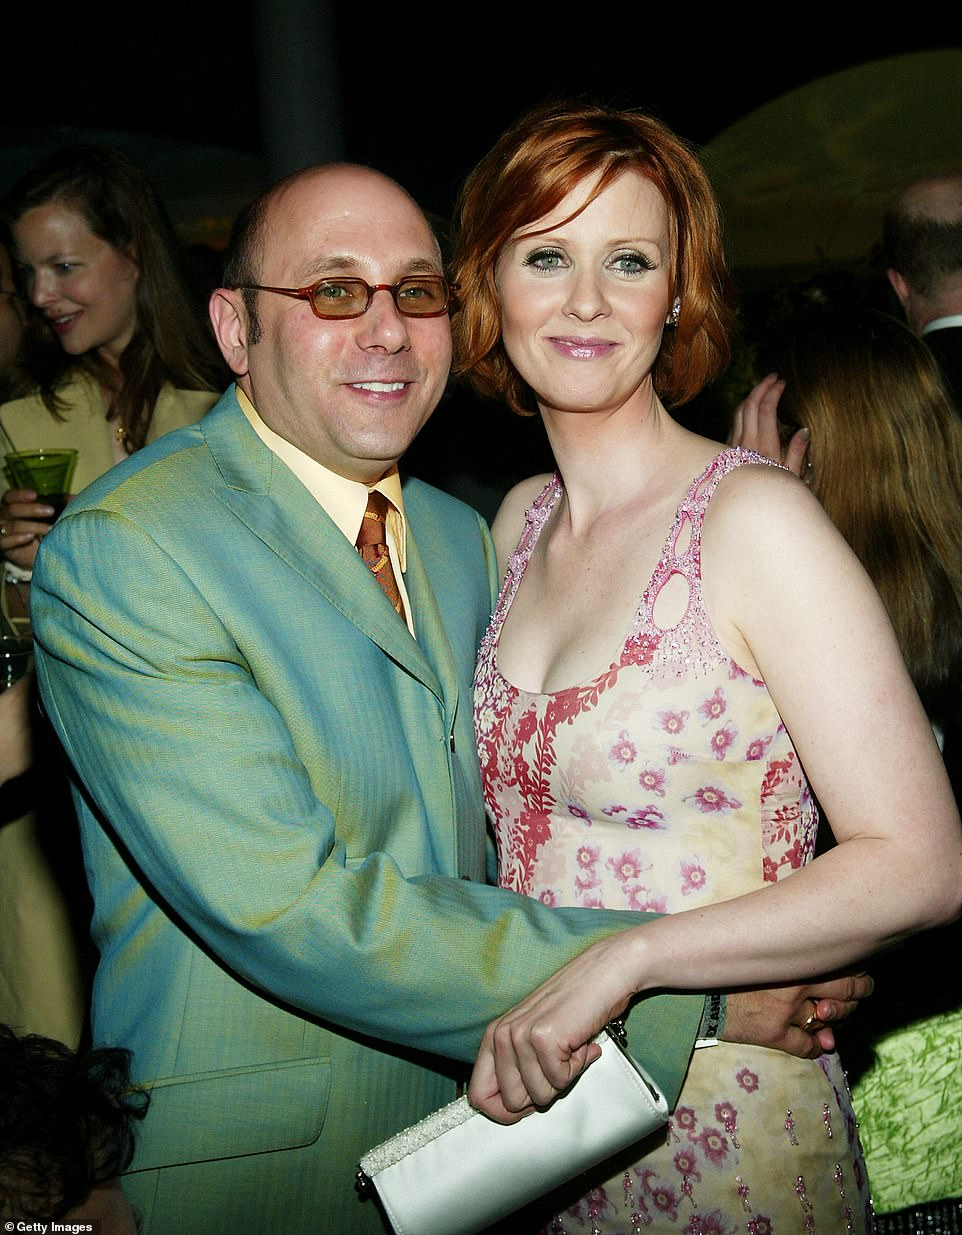 , Sex and the City star Willie Garson dead at 57 after 'cancer battle', The Evepost BBC News